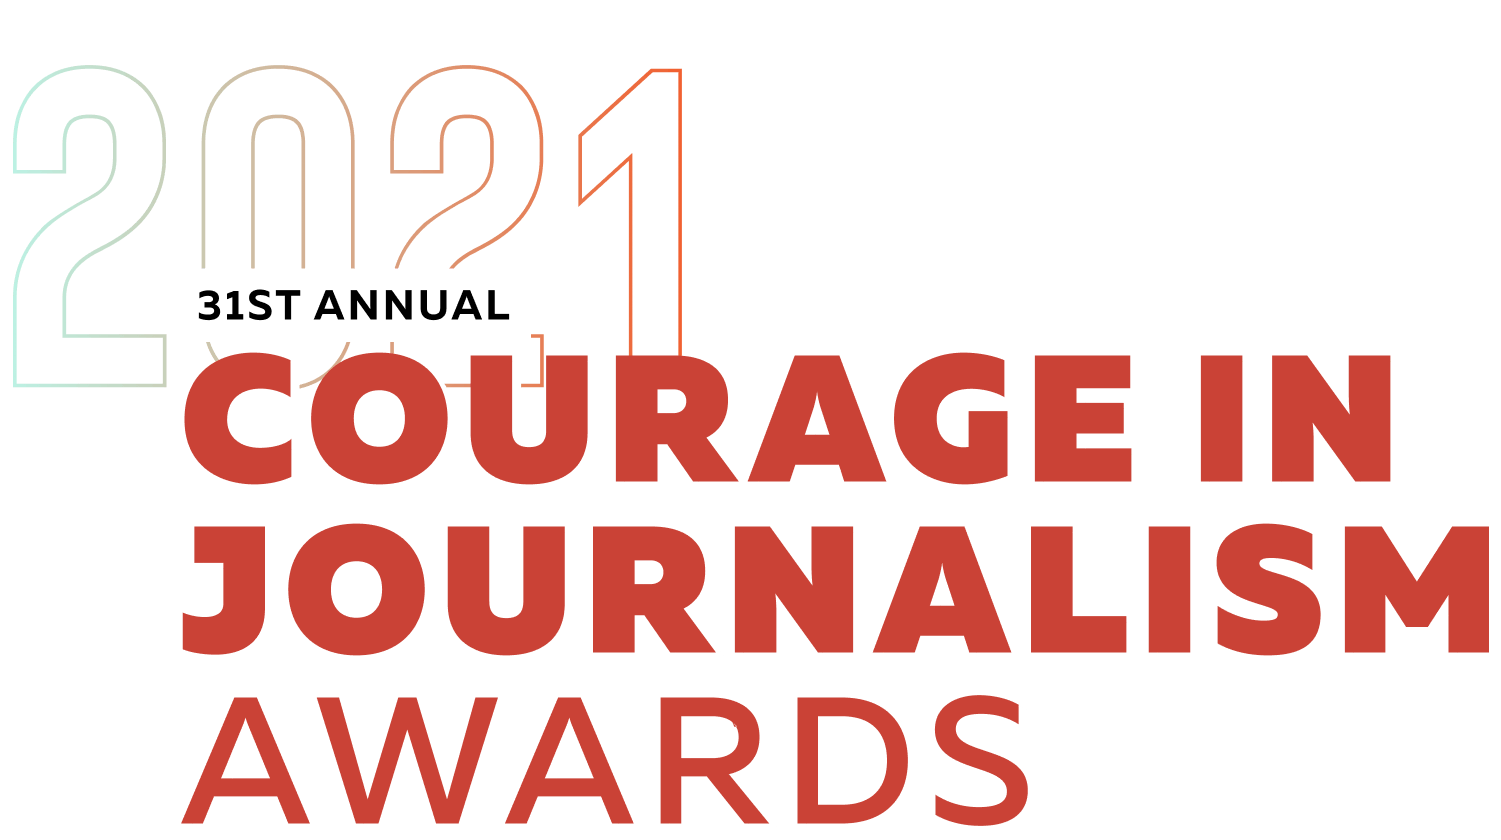 2021 31st Annual Courage In Journalism Awards